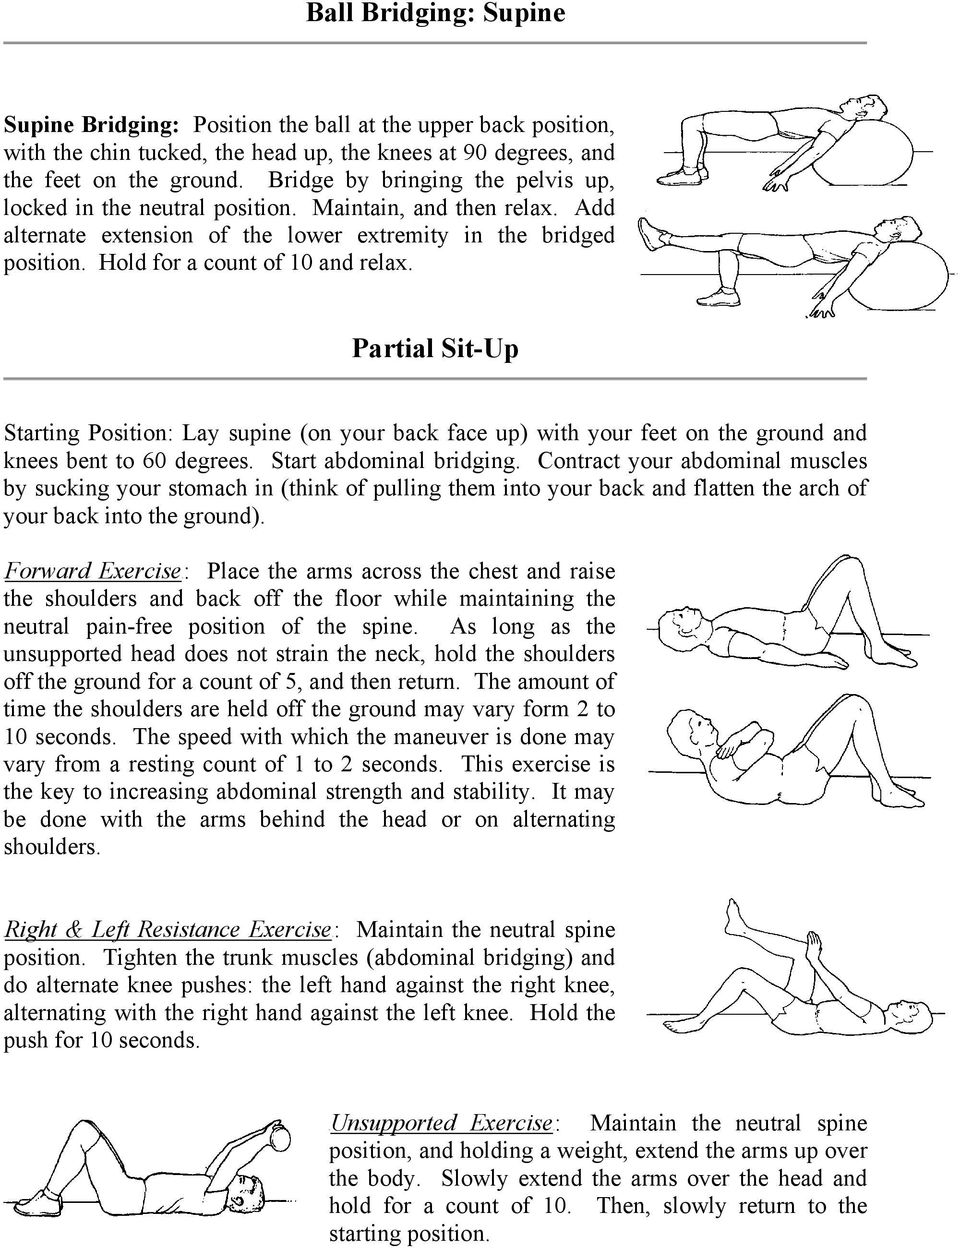 Partial Sit-Up Starting Position: Lay supine (on your back face up) with your feet on the ground and knees bent to 60 degrees. Start abdominal bridging.